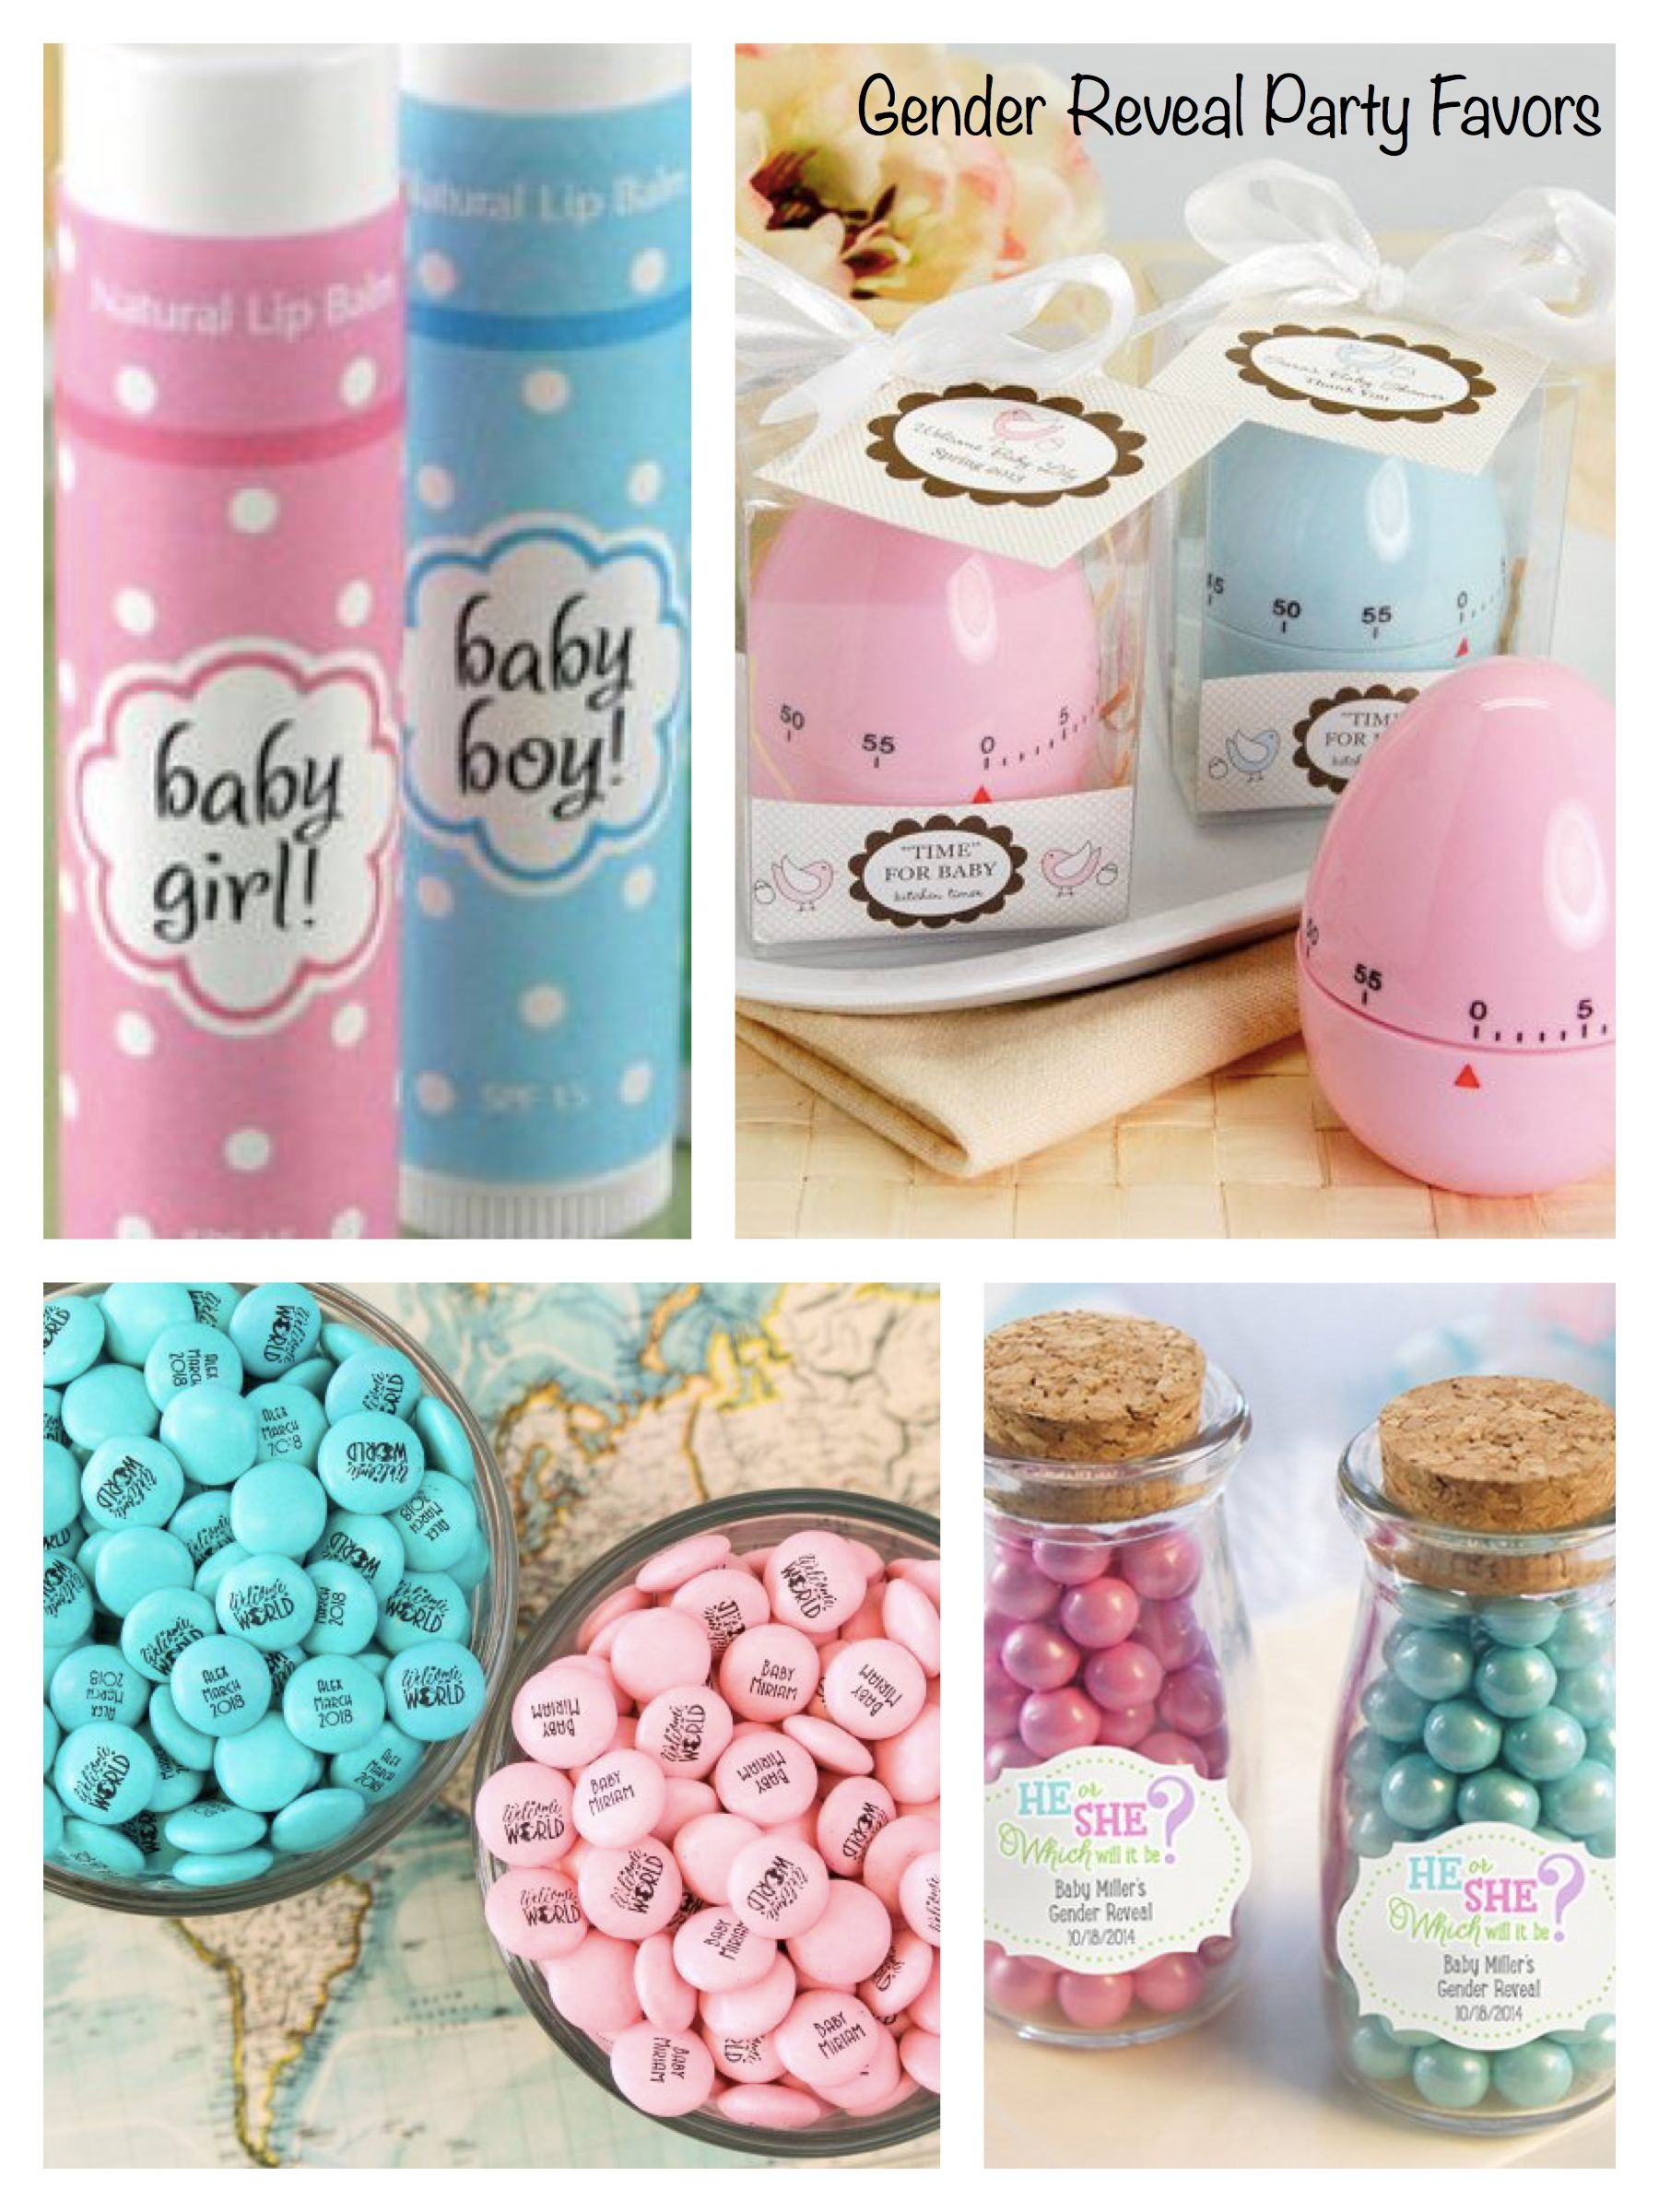 10 Baby Gender Reveal Party Ideas Baby Shower Partyideapros Com Gender Reveal Party Favors Gender Reveal Party Gifts Gender Reveal Party Theme